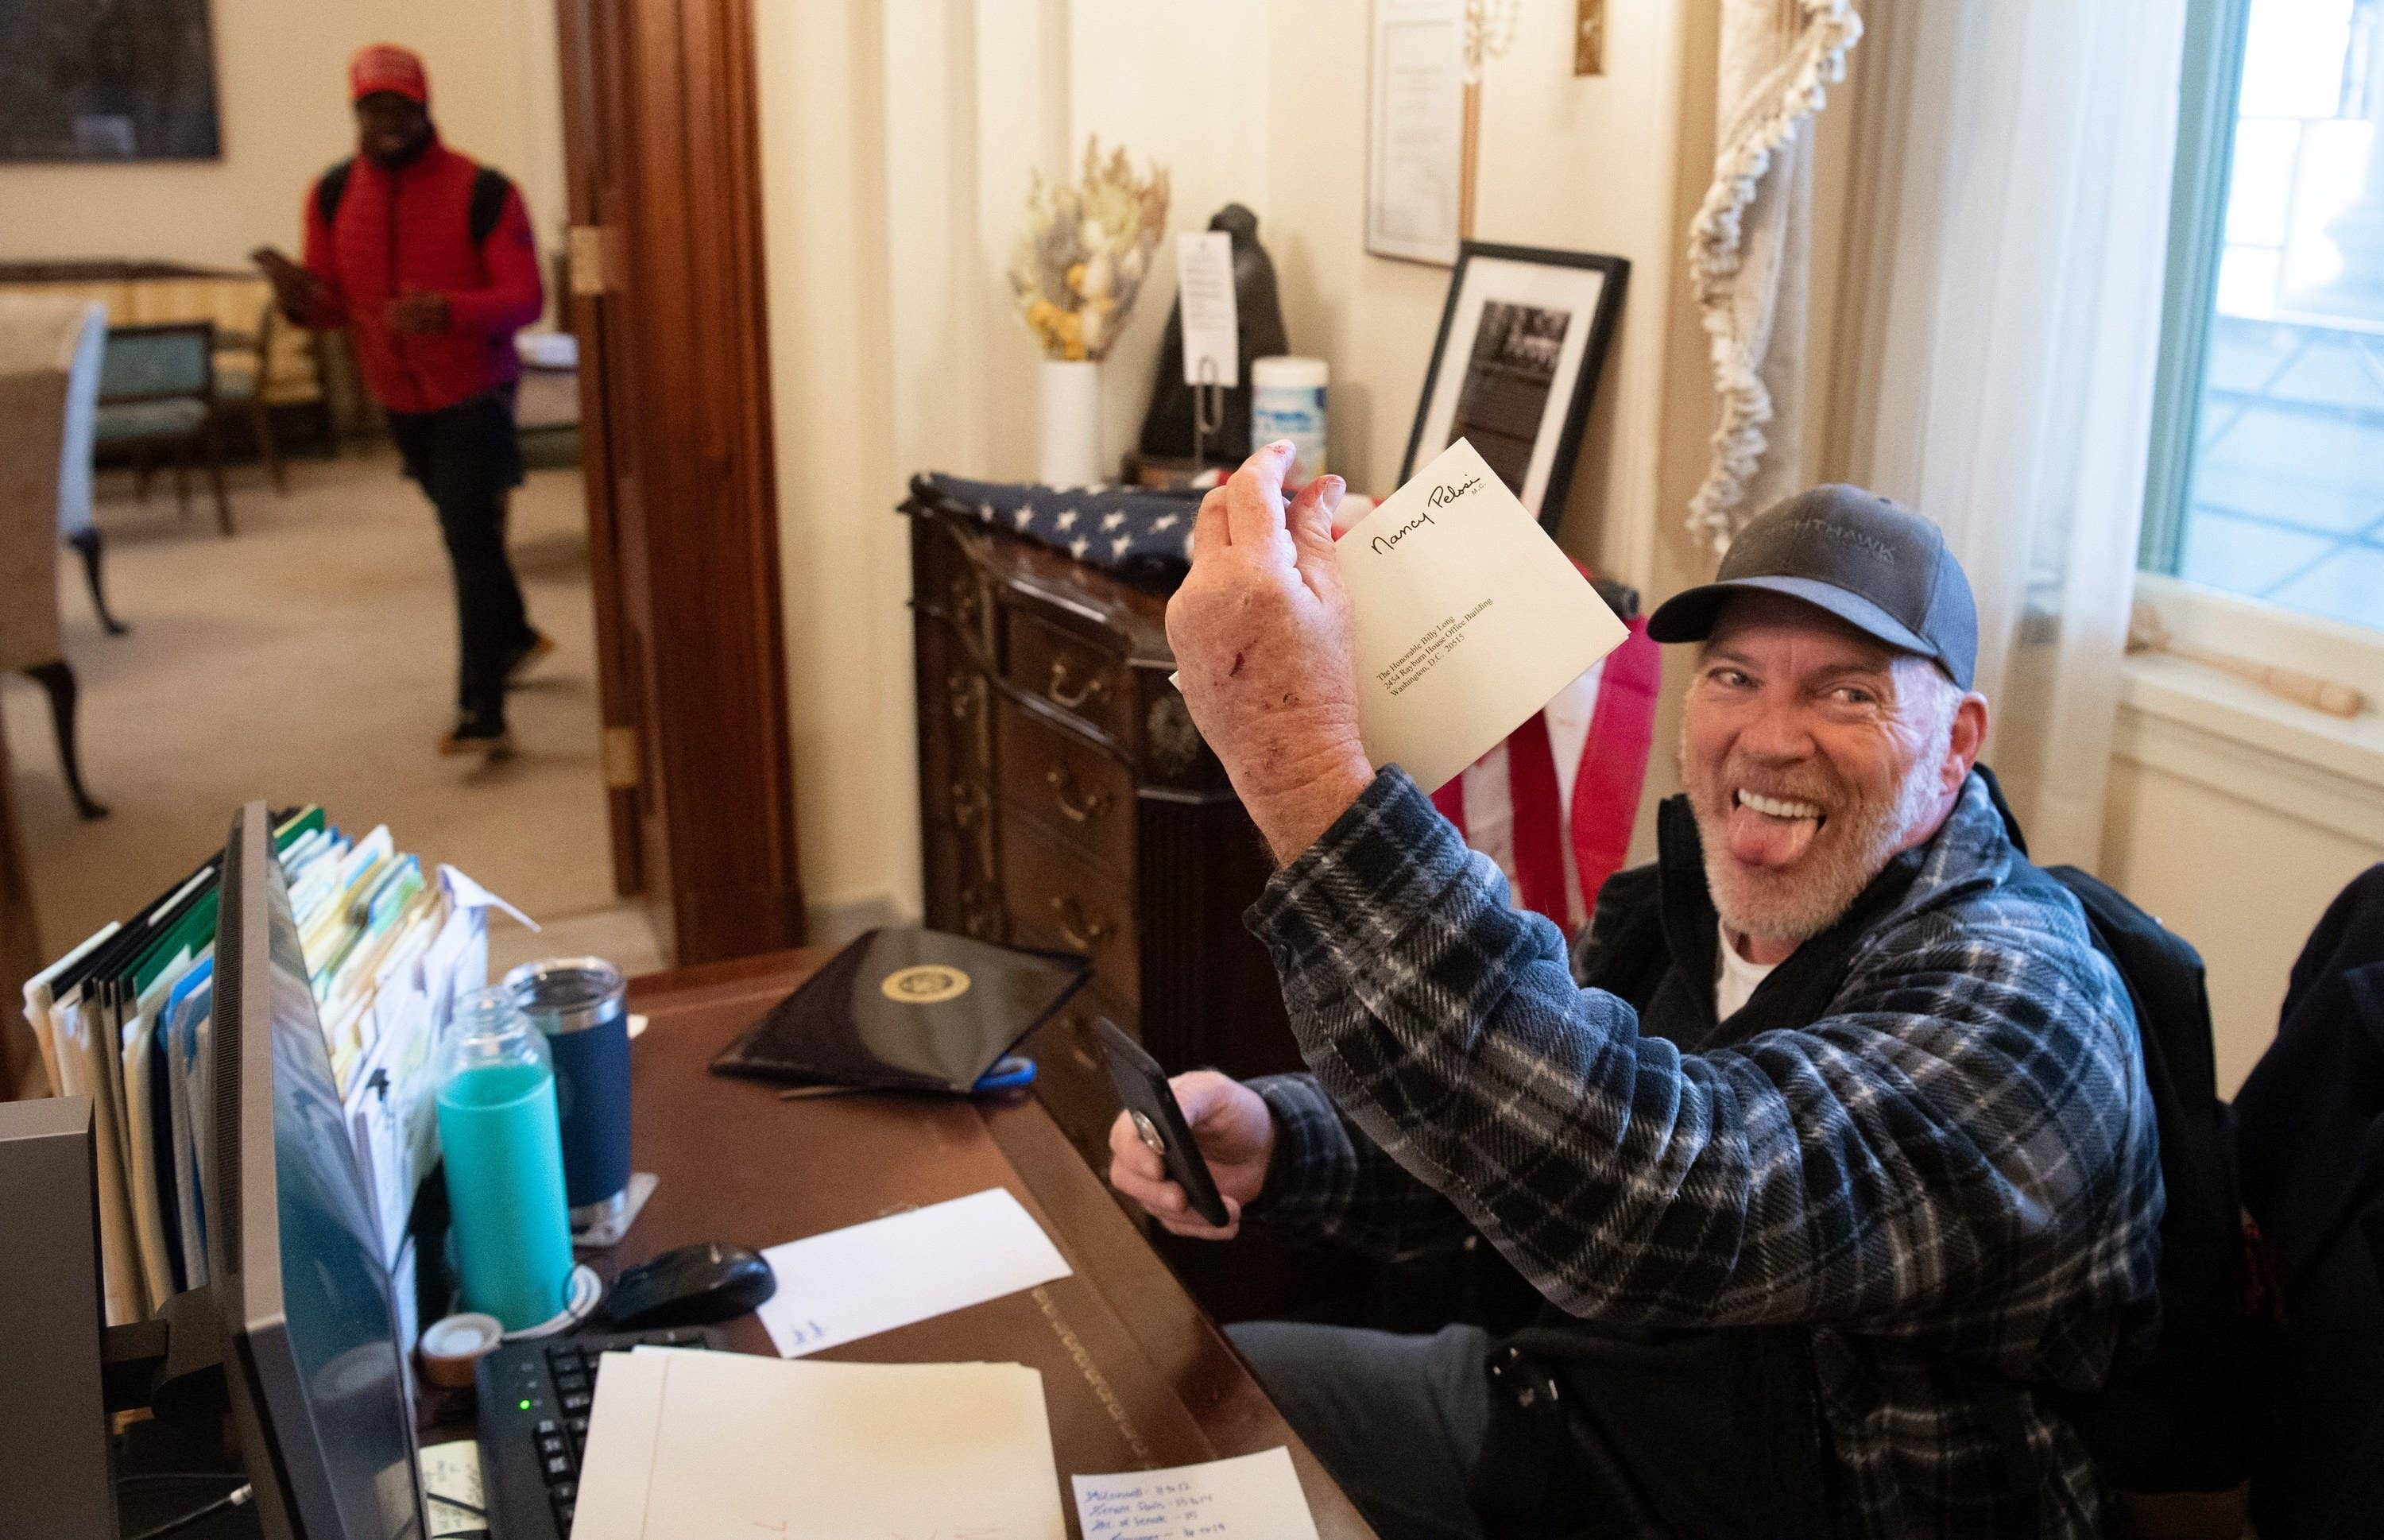 The Man Photographed With His Foot On Nancy Pelosi's Desk During The Capitol Riots Will Be Released From Jail